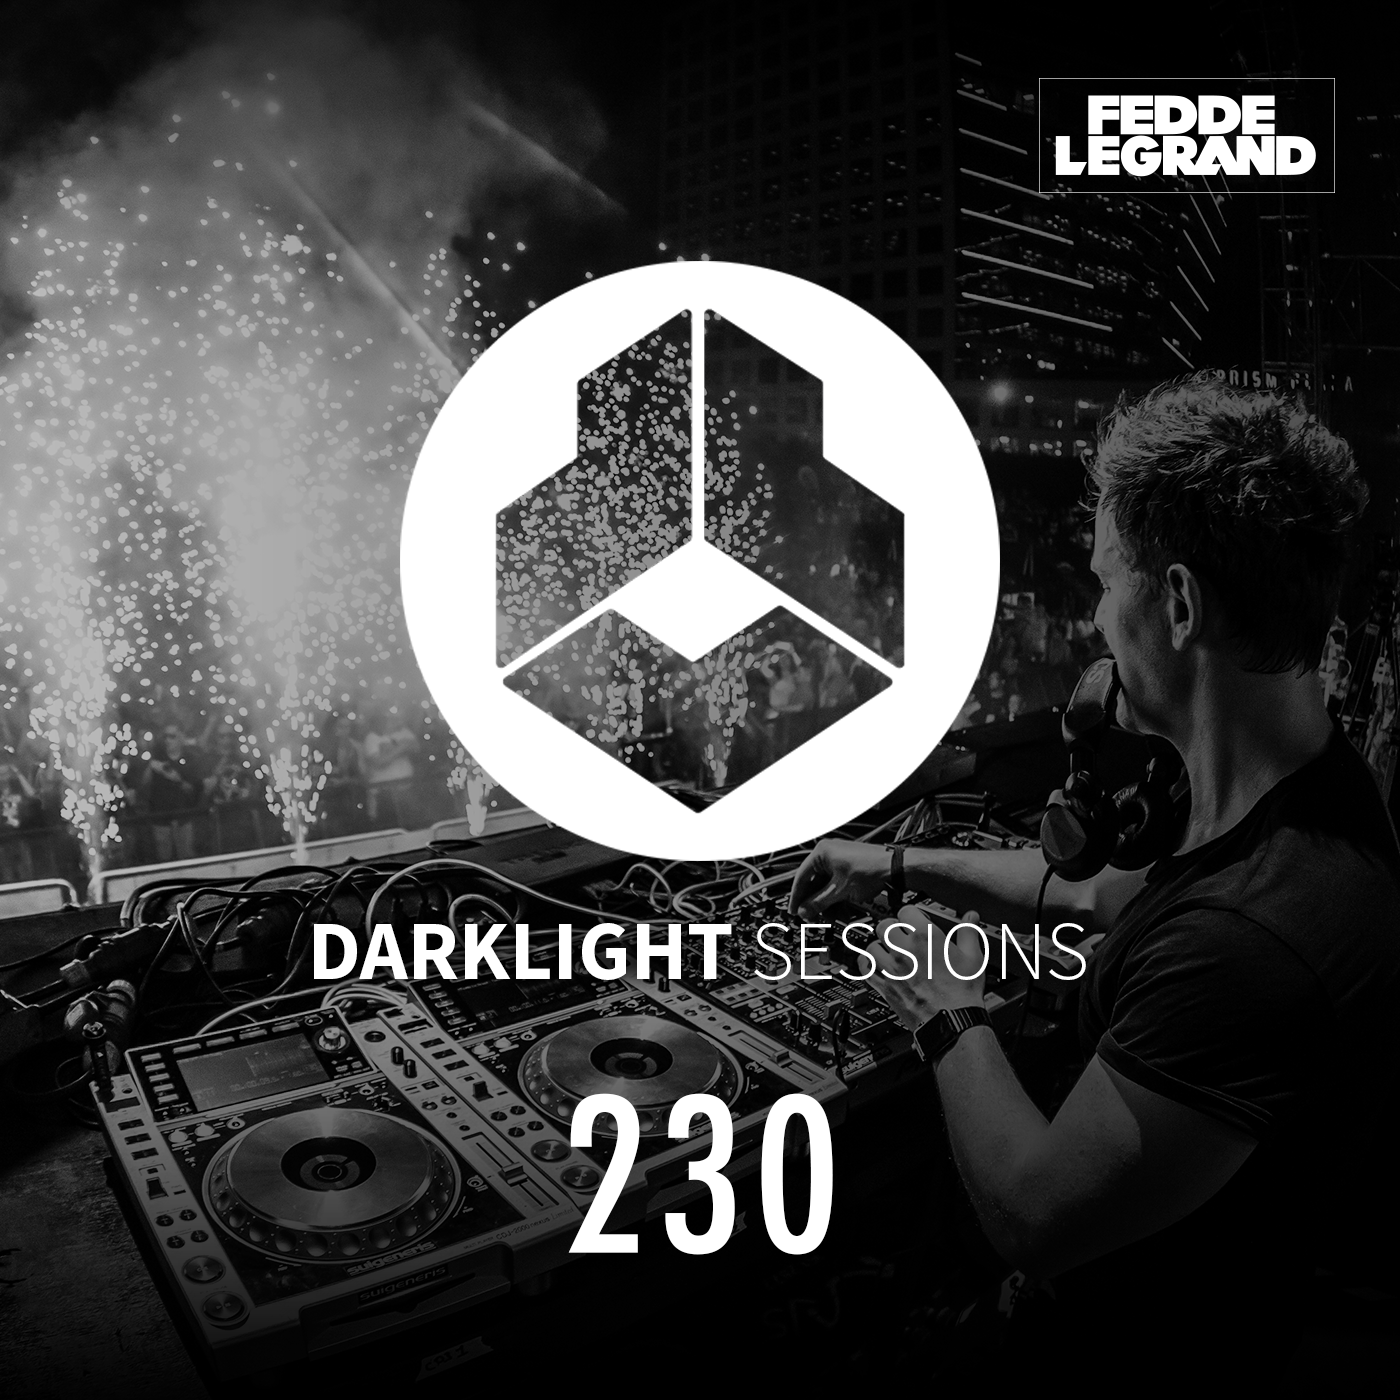 Darklight Sessions 230